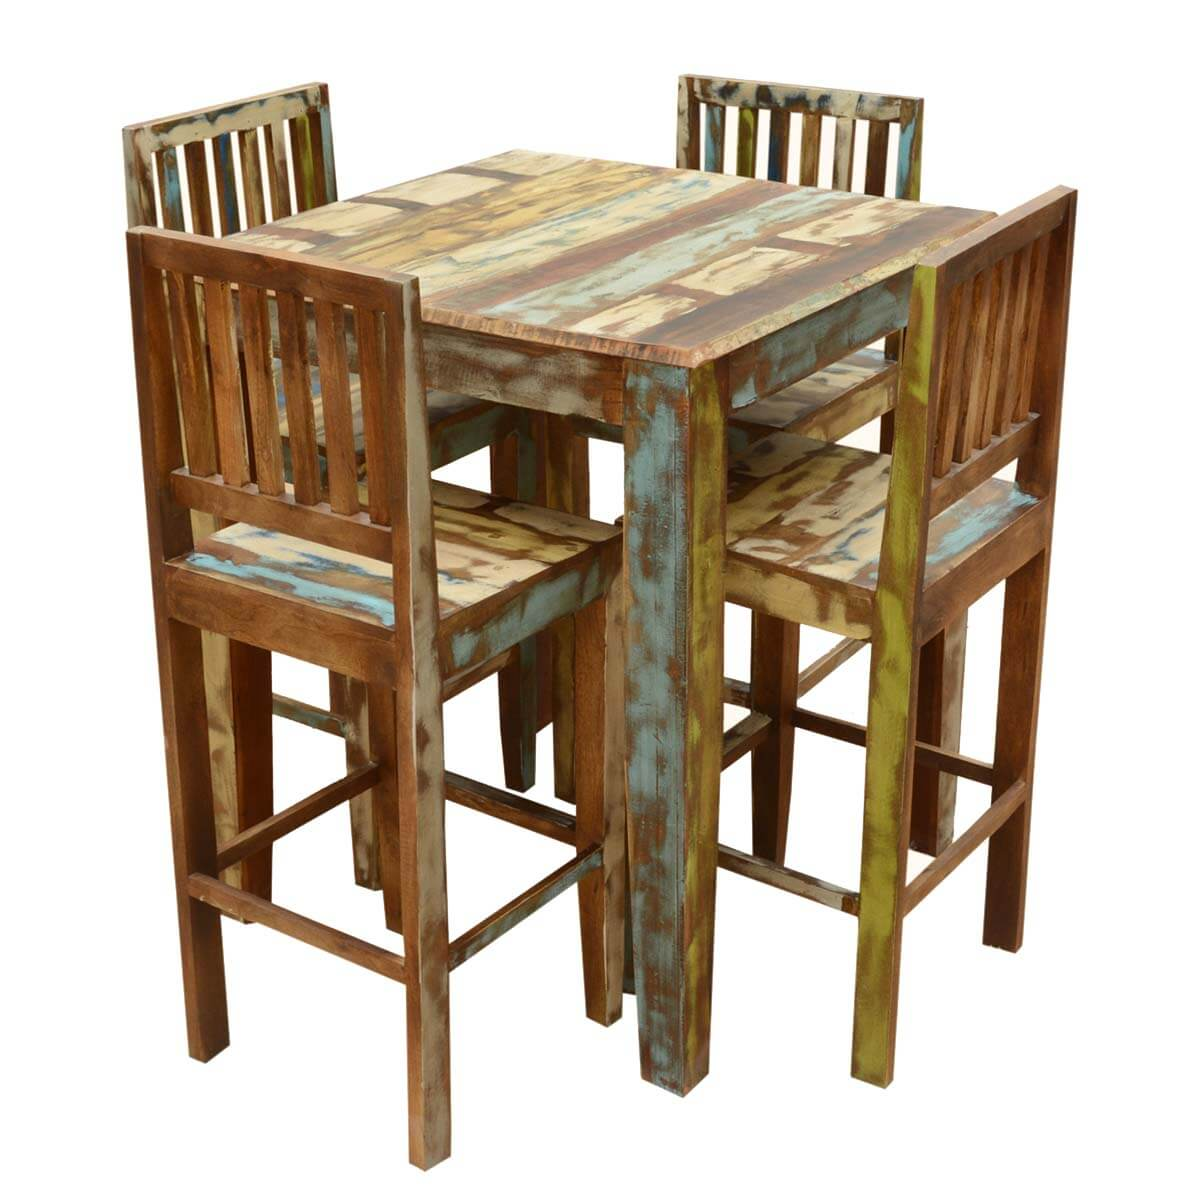 Pub Table With Chairs Appalachian Rustic Reclaimed Wood High Bar Table And Chair Set